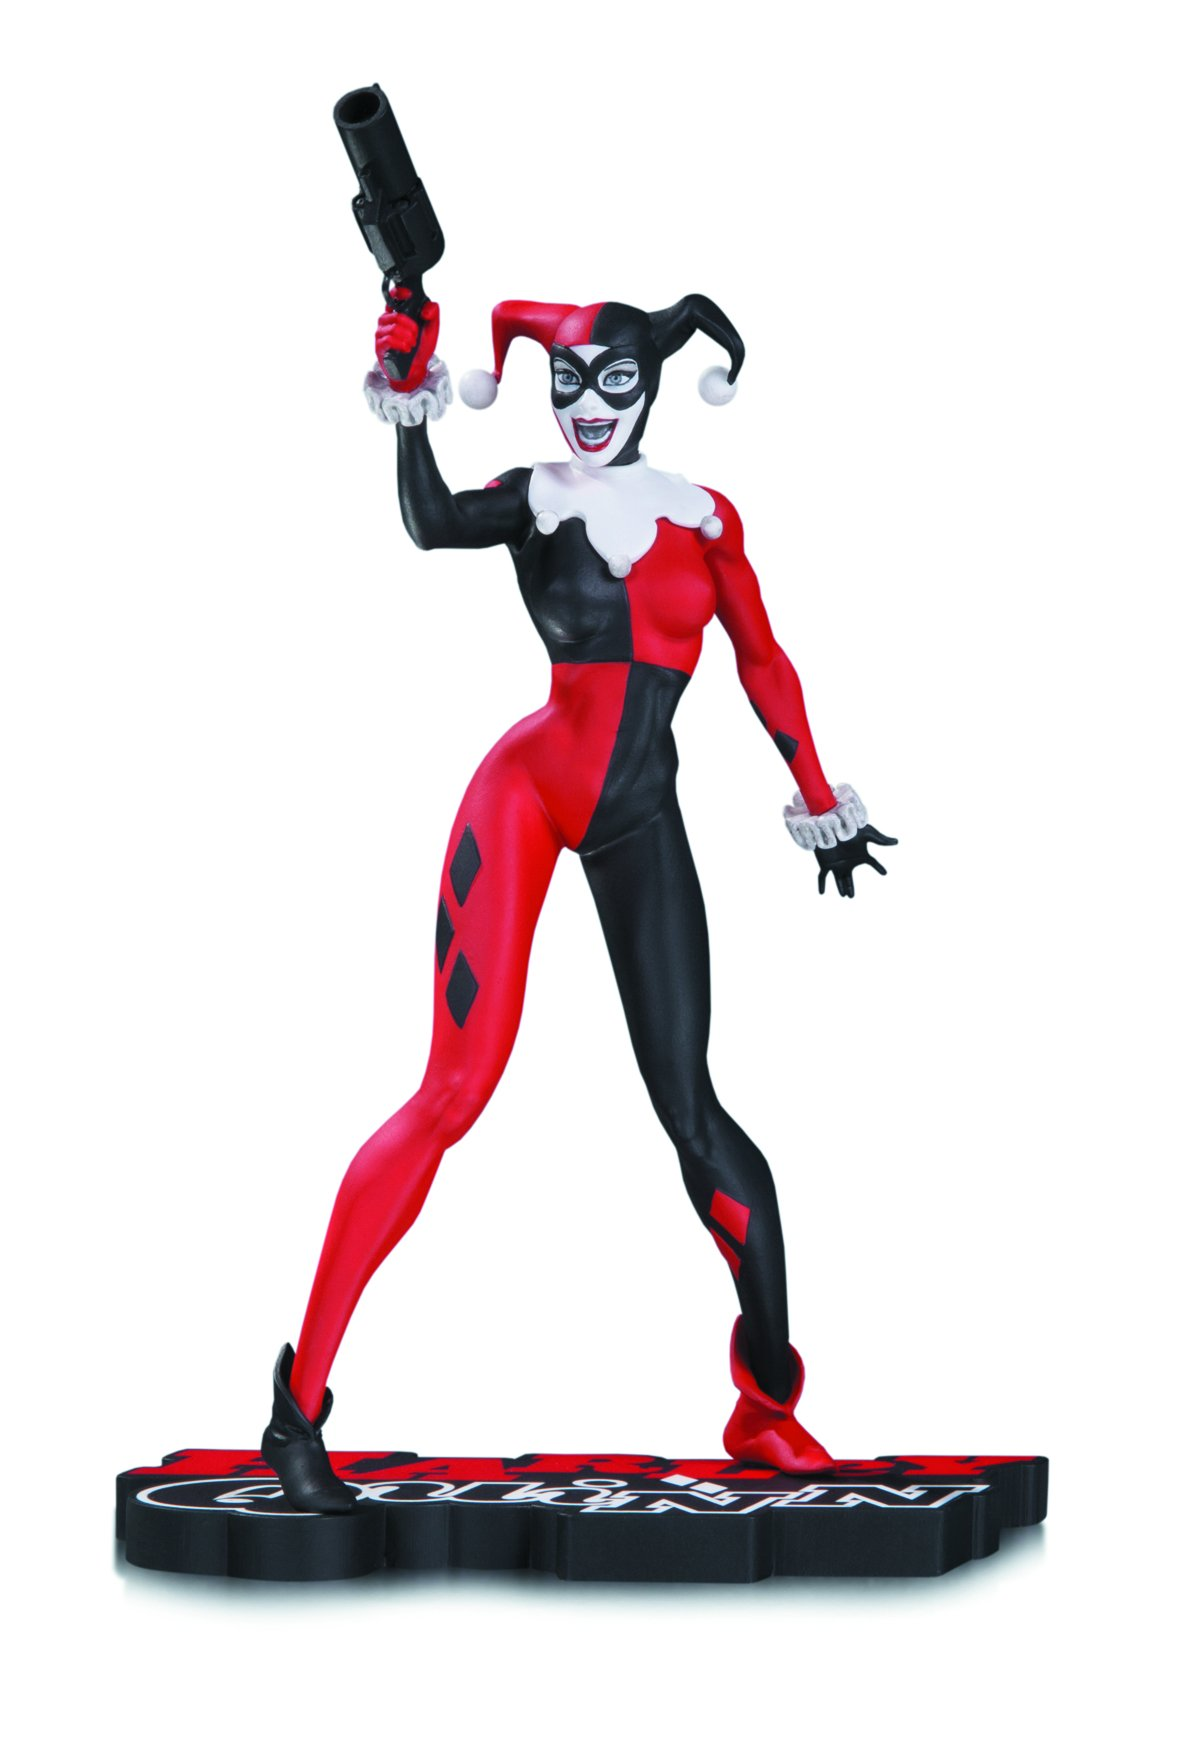 DC Collectibles Harley Quinn Harley Quinn Statue, Red/White/Black